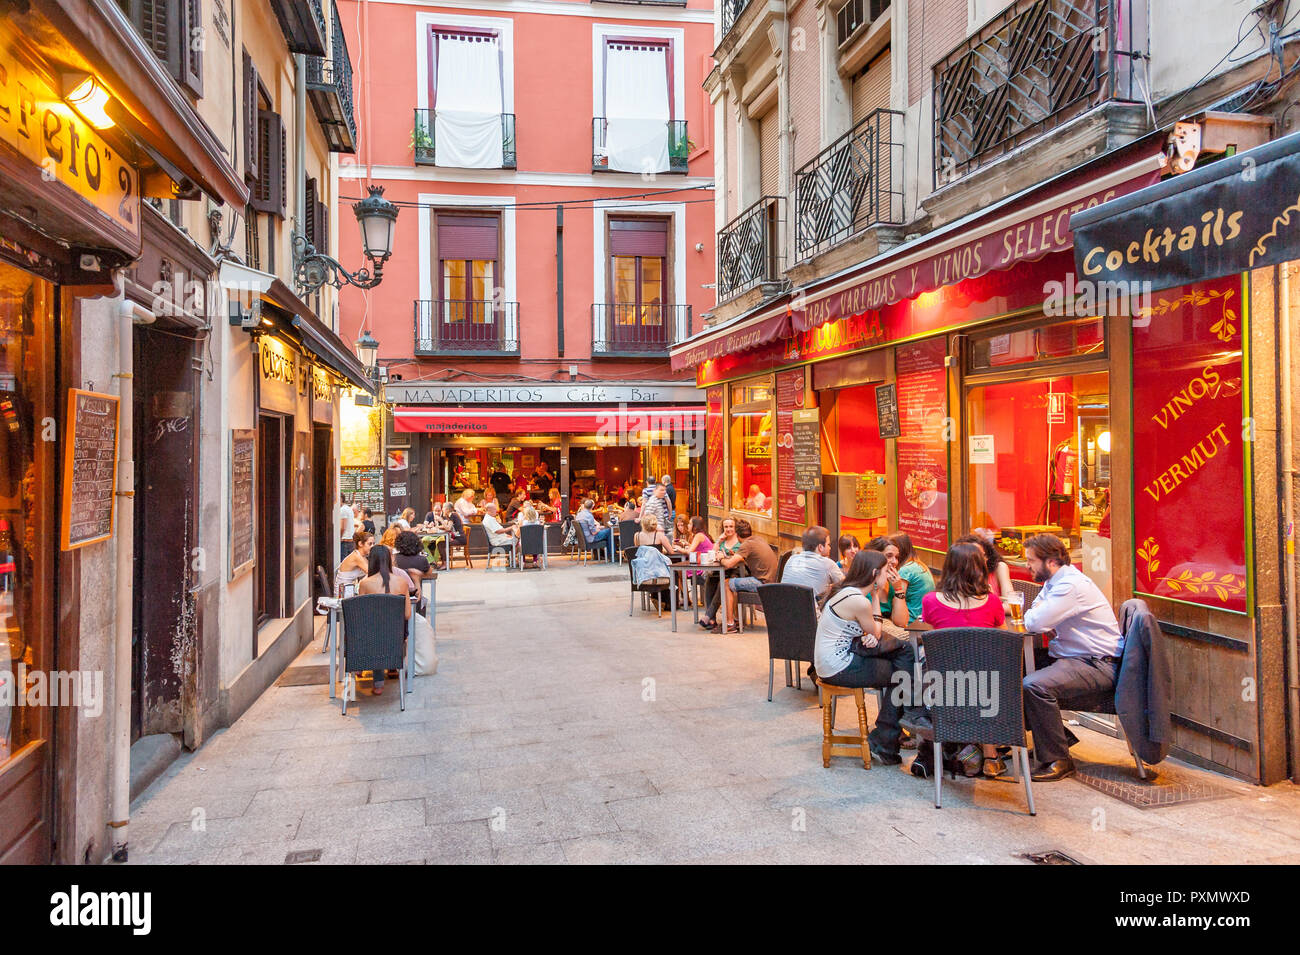 Bars and restaurants in Calle Barcelona, Madrid, Spain - Stock Image